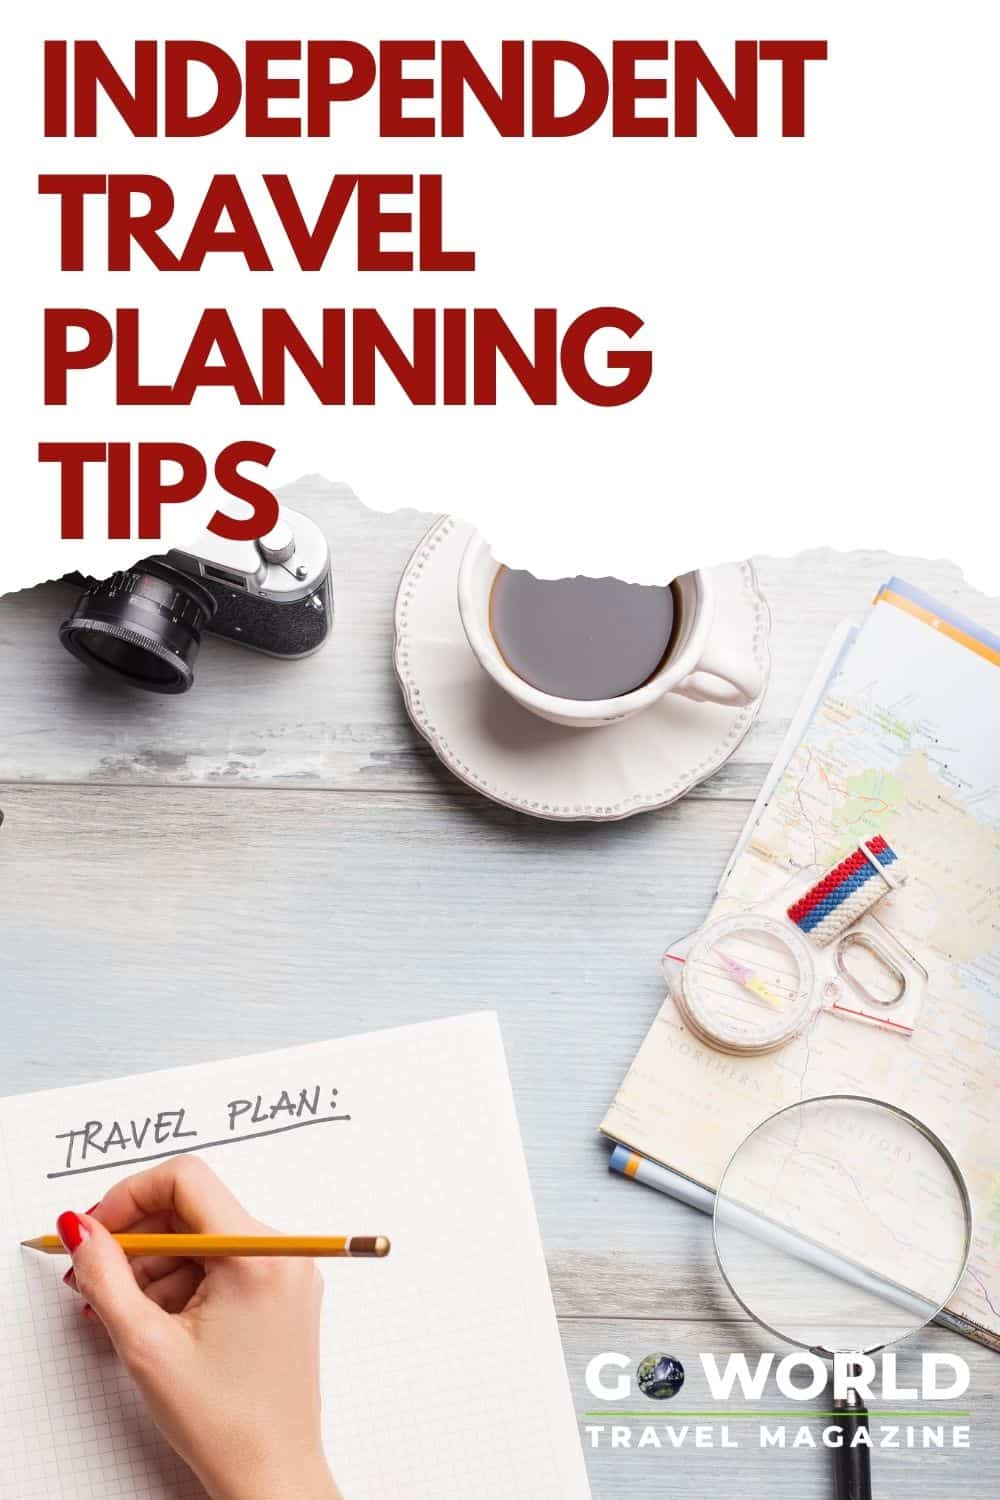 Independent travel is a great way to travel on your terms, but it does take planning. Here's tips for creating a memorable travel experience. #traveltips #independenttravel #travelplanning